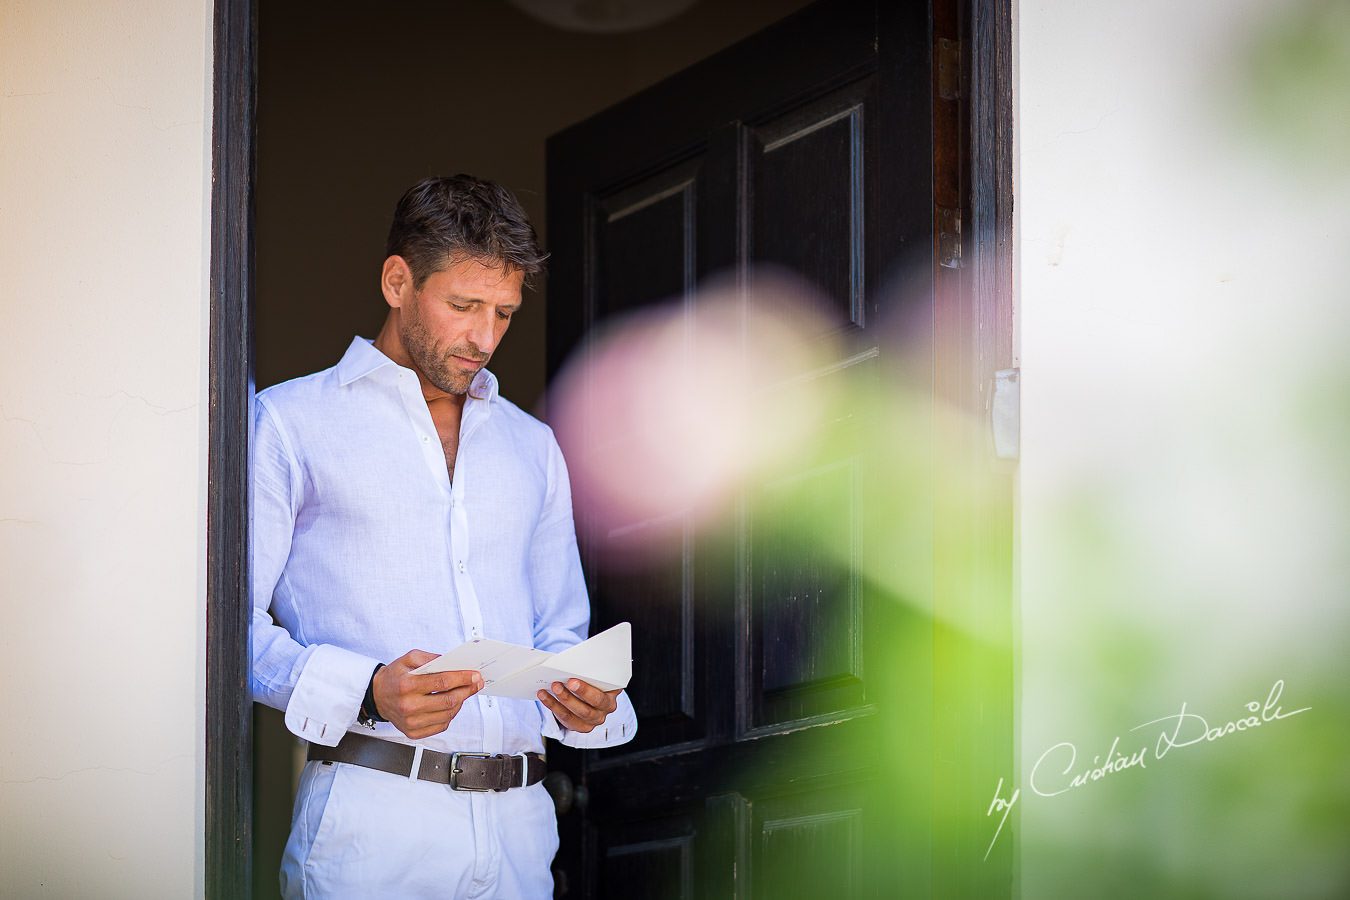 Moments with Jurian, the groom at Cap St. George captured during a beautiful wedding in Paphos by Cyprus Photographer Cristian Dascalu.